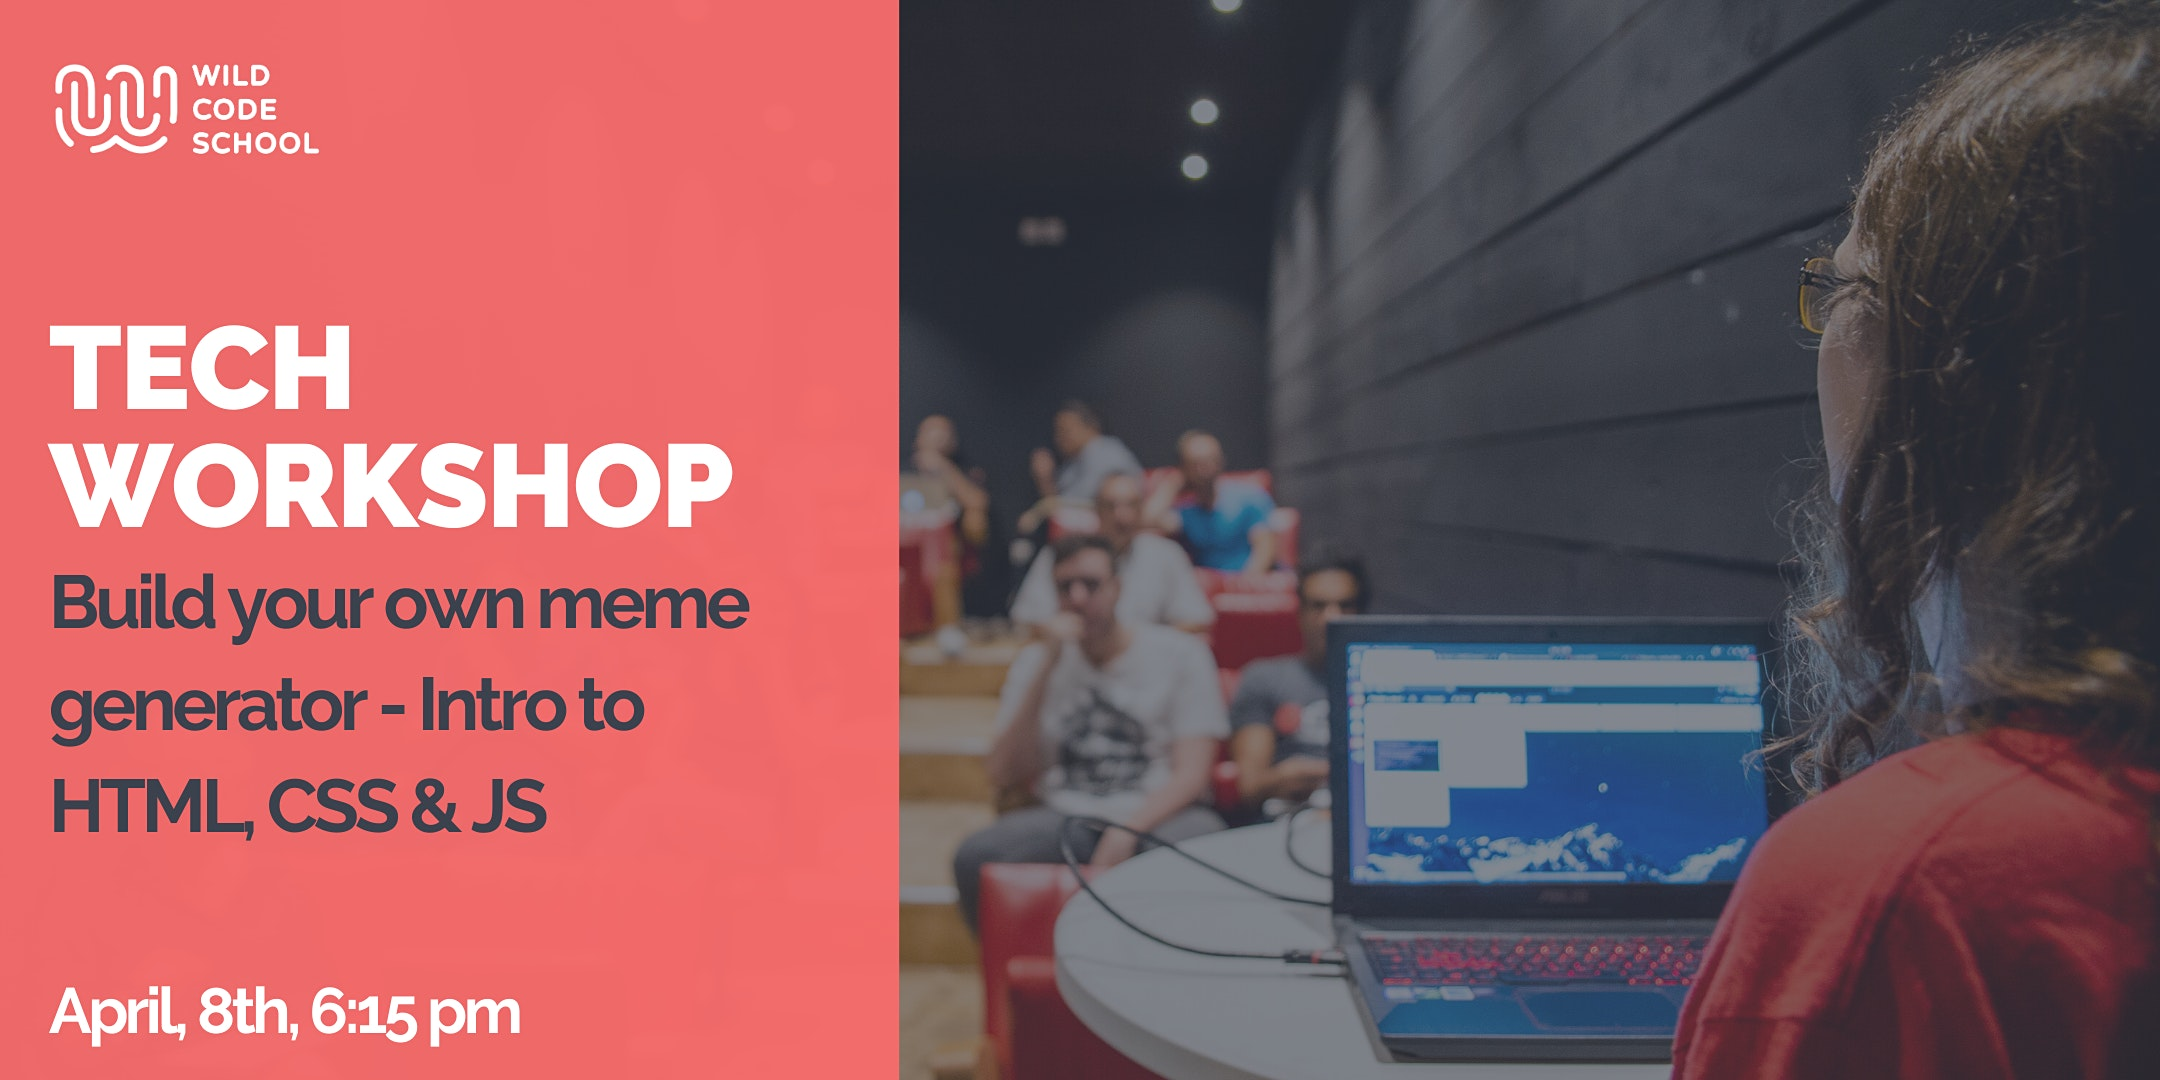 Tech Workshop: Create your own meme generator | HTML, CSS & JS intro